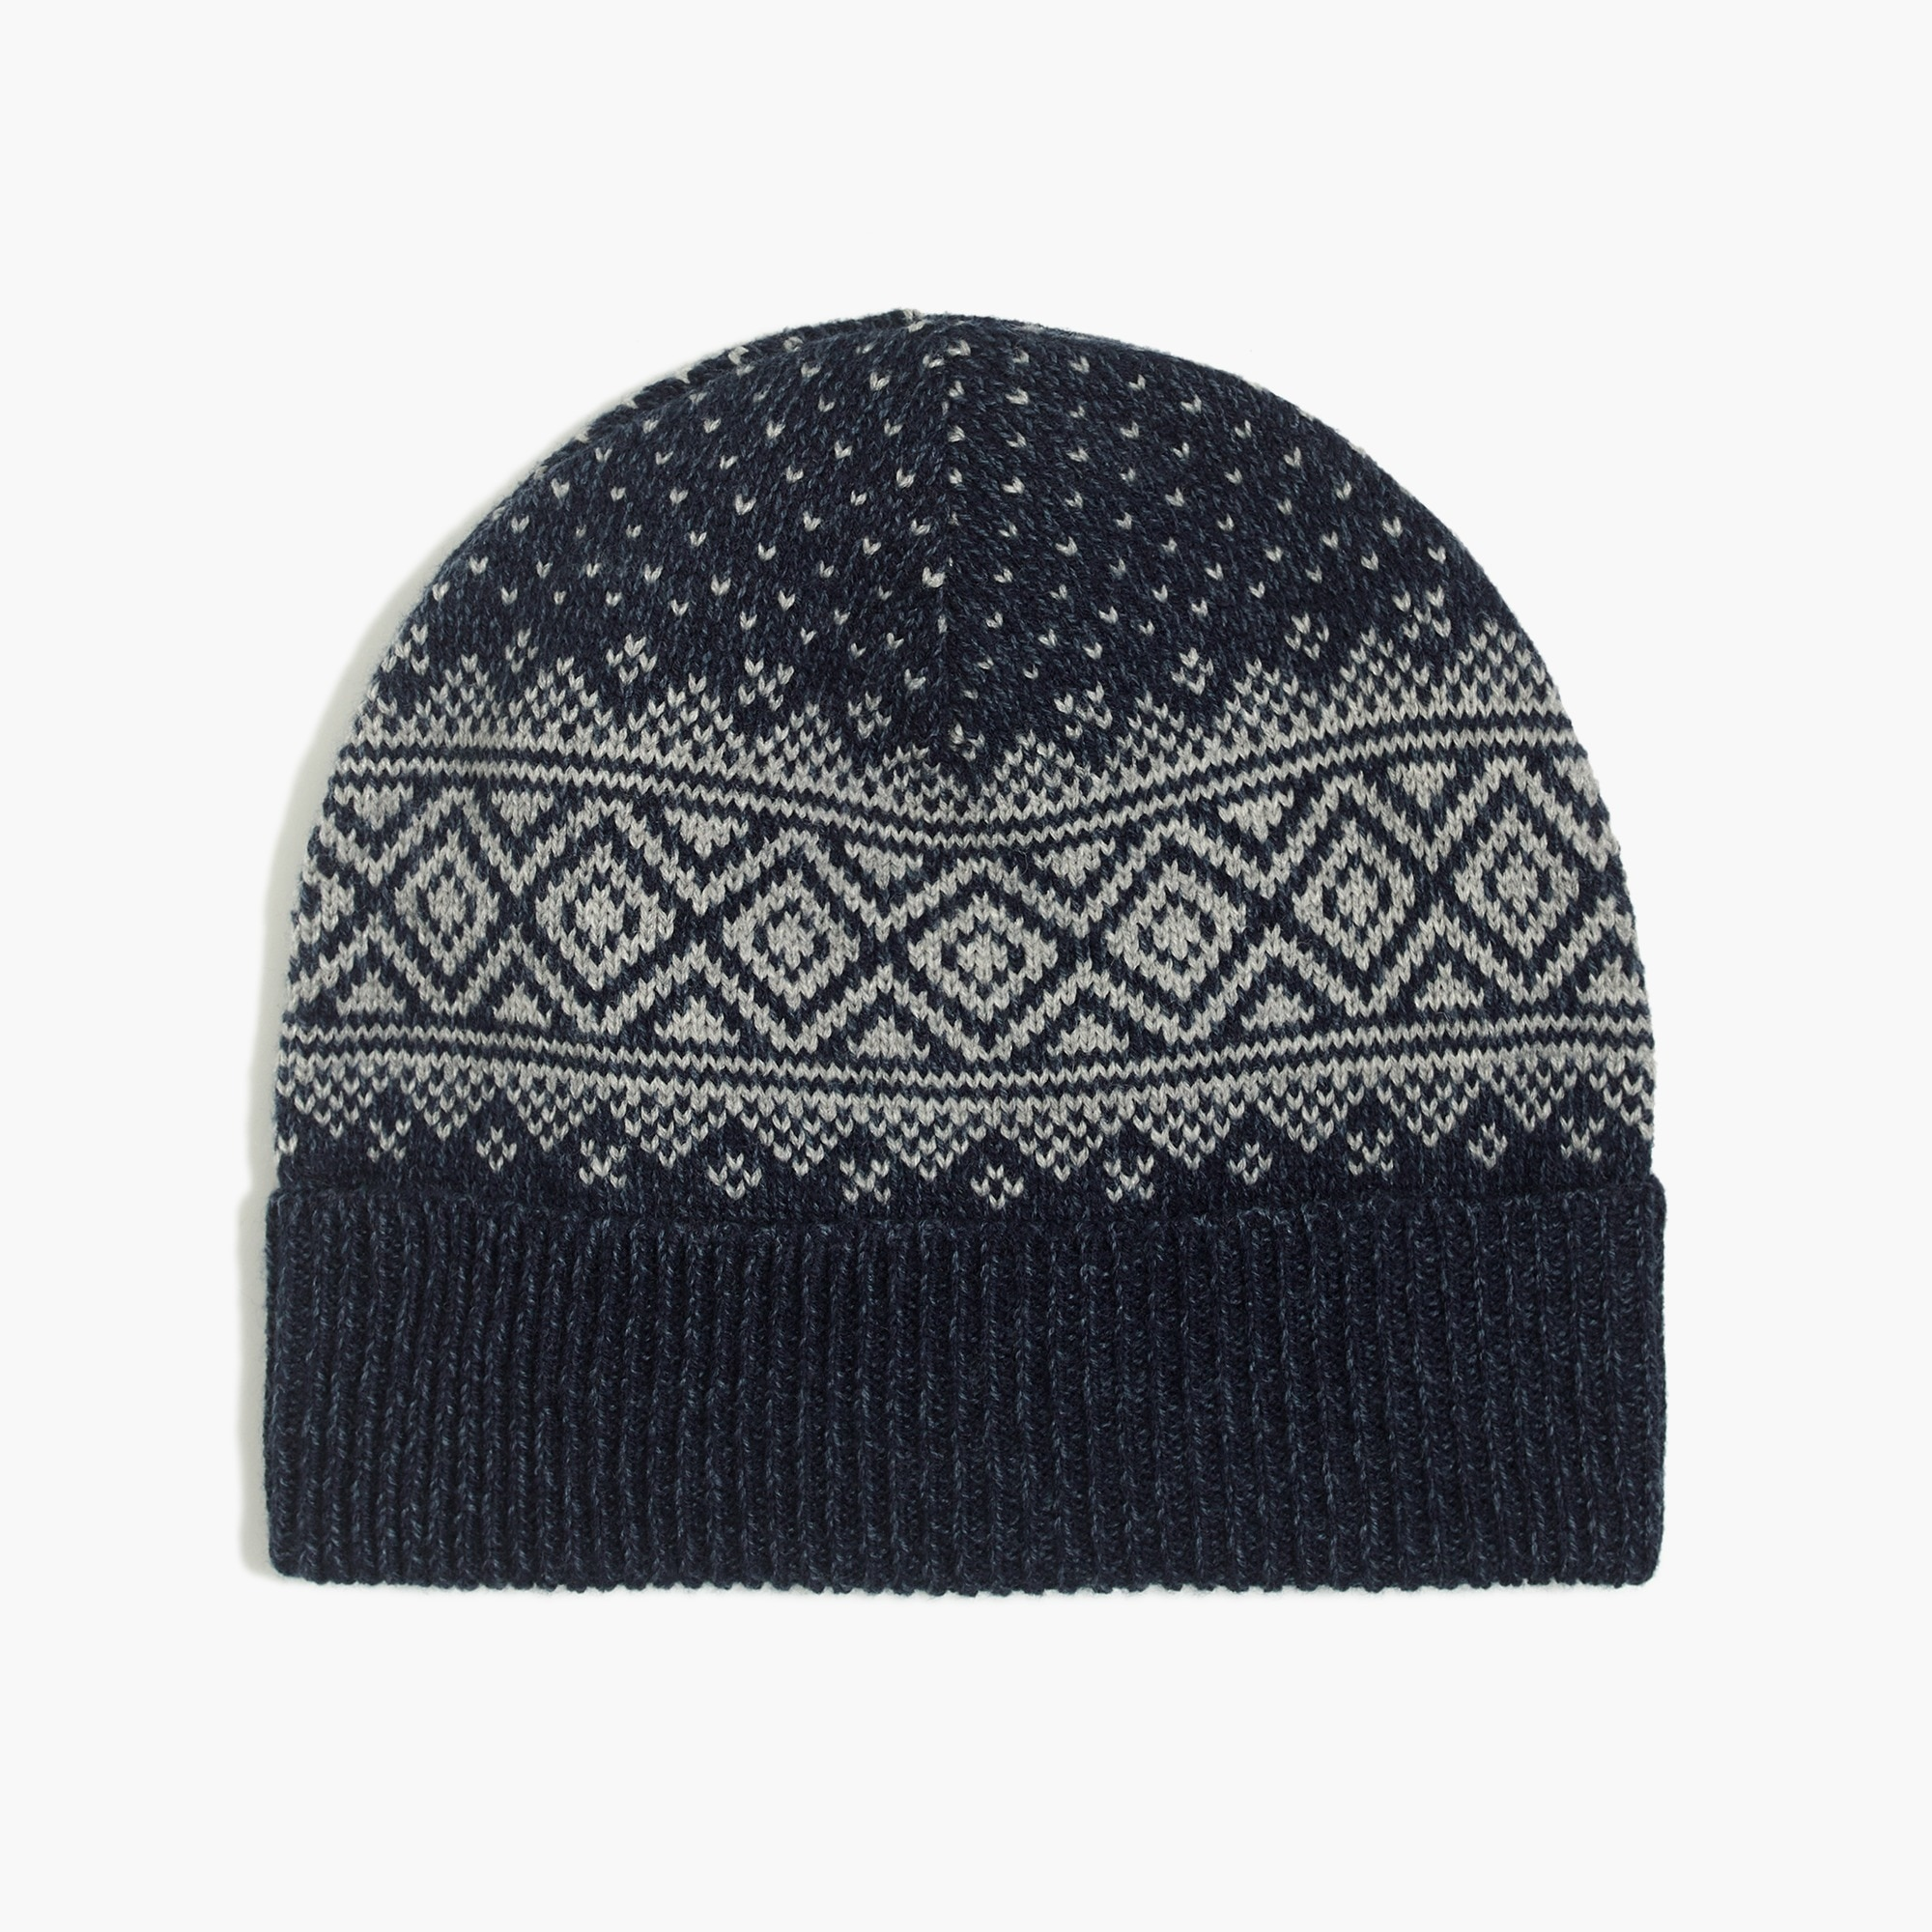 factory mens Fair isle beanie